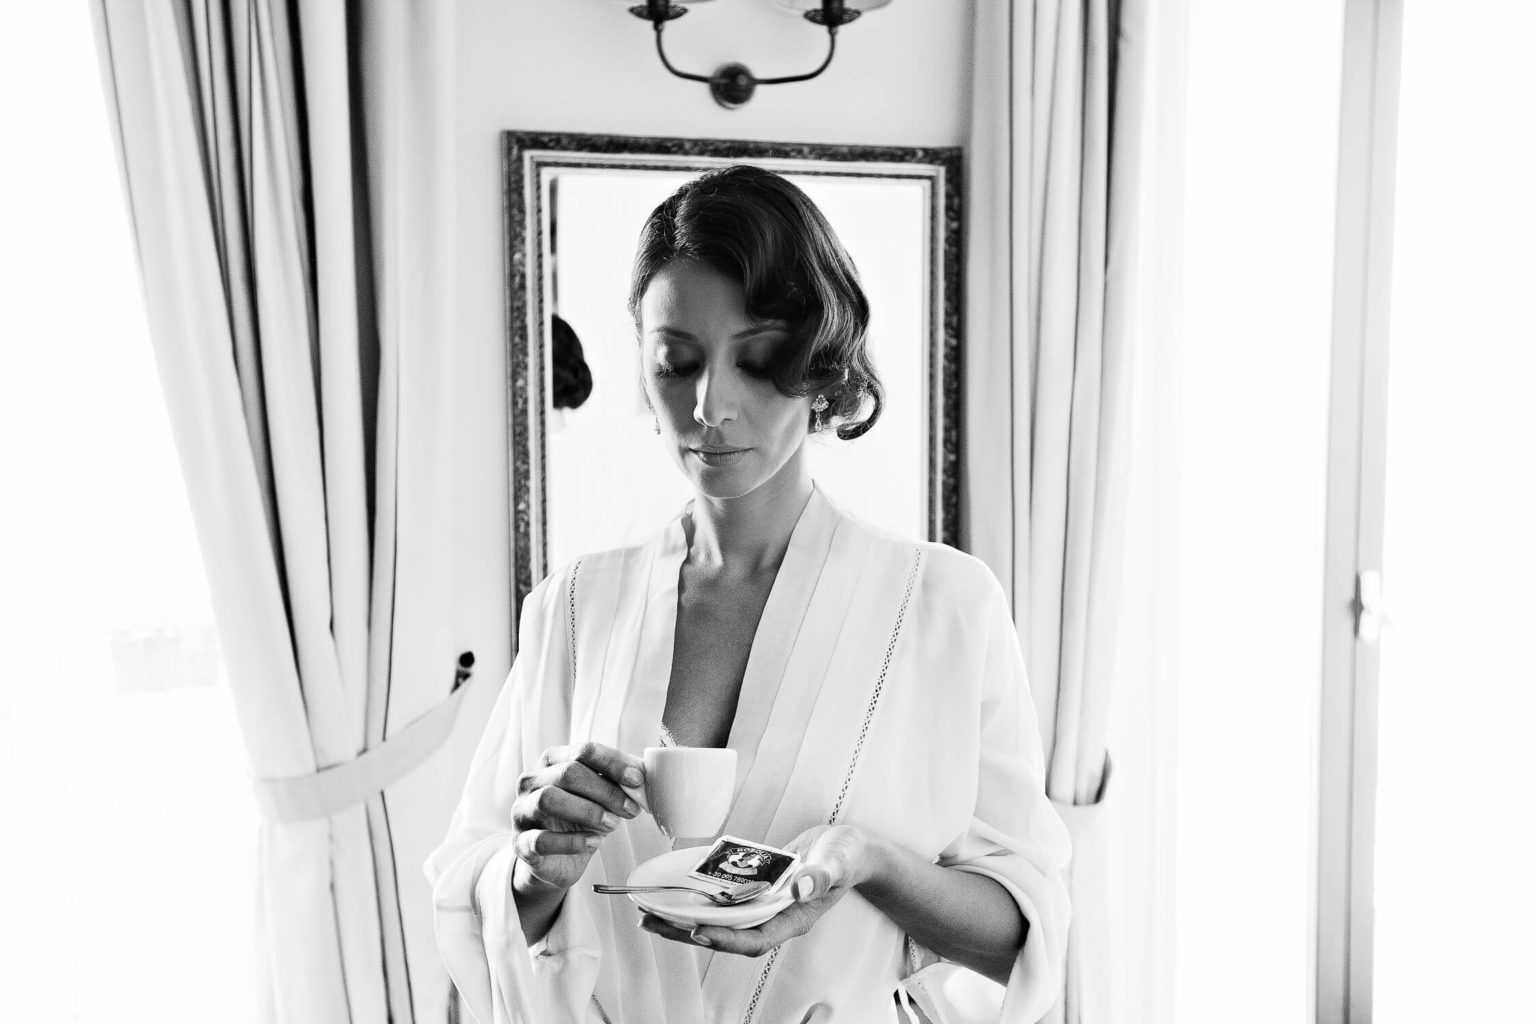 Bride drinks coffee, wedding photography by Nino Lombardo